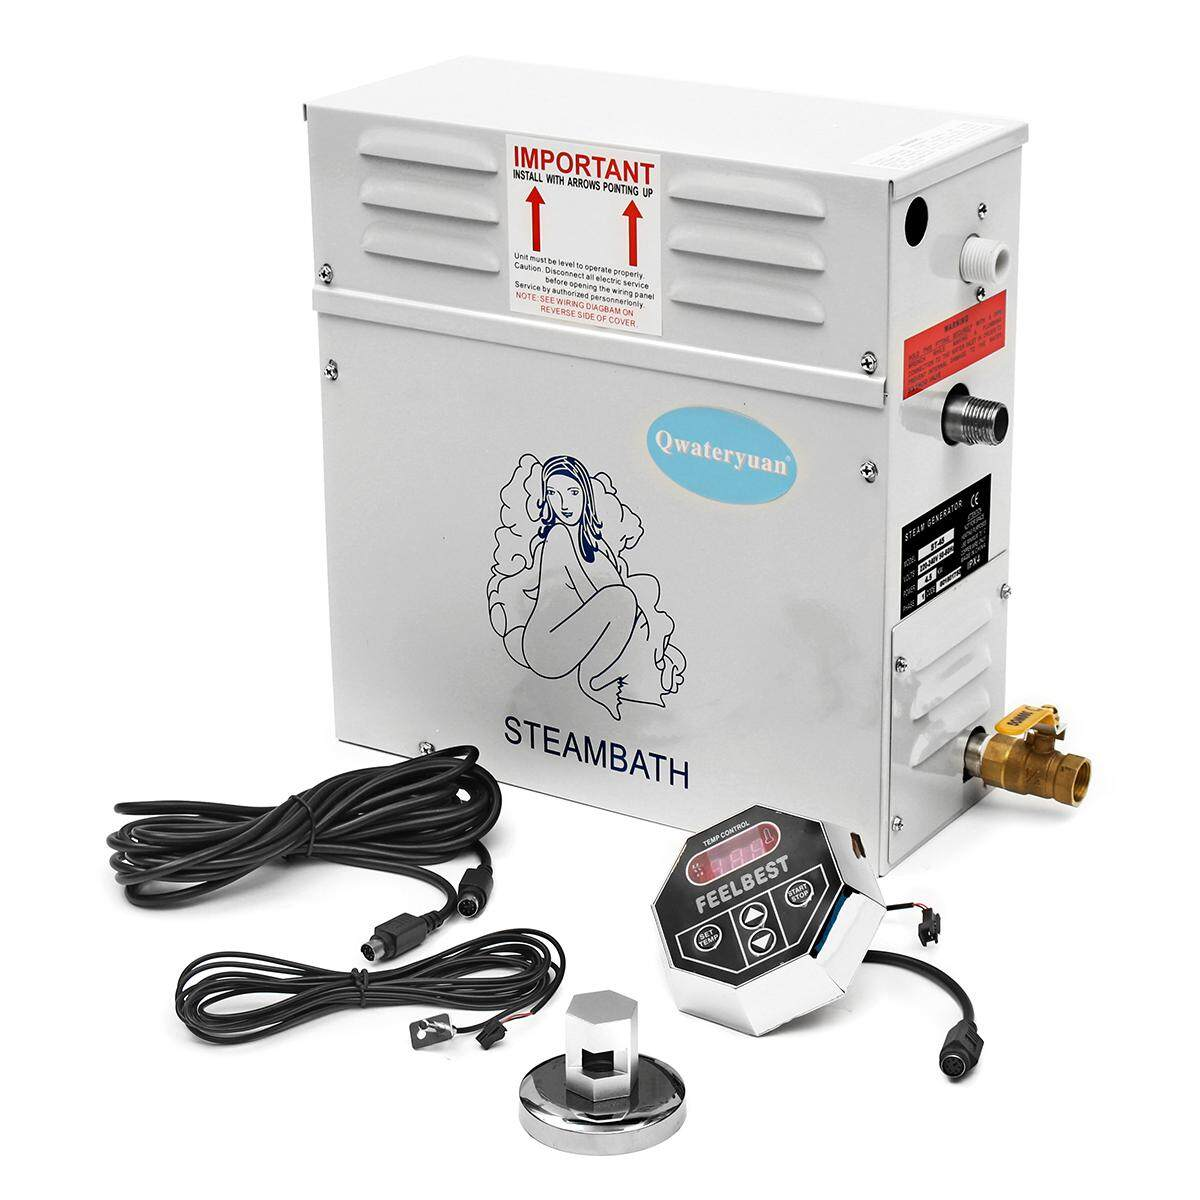 Heaters For Sale Heater Appliances Prices Brands Review In Temperature Control Circuit Refrigerators Free Electronic 220v 45kw Steam Generator Sauna Bath Home Spa Shower Steamer St 135m Controller